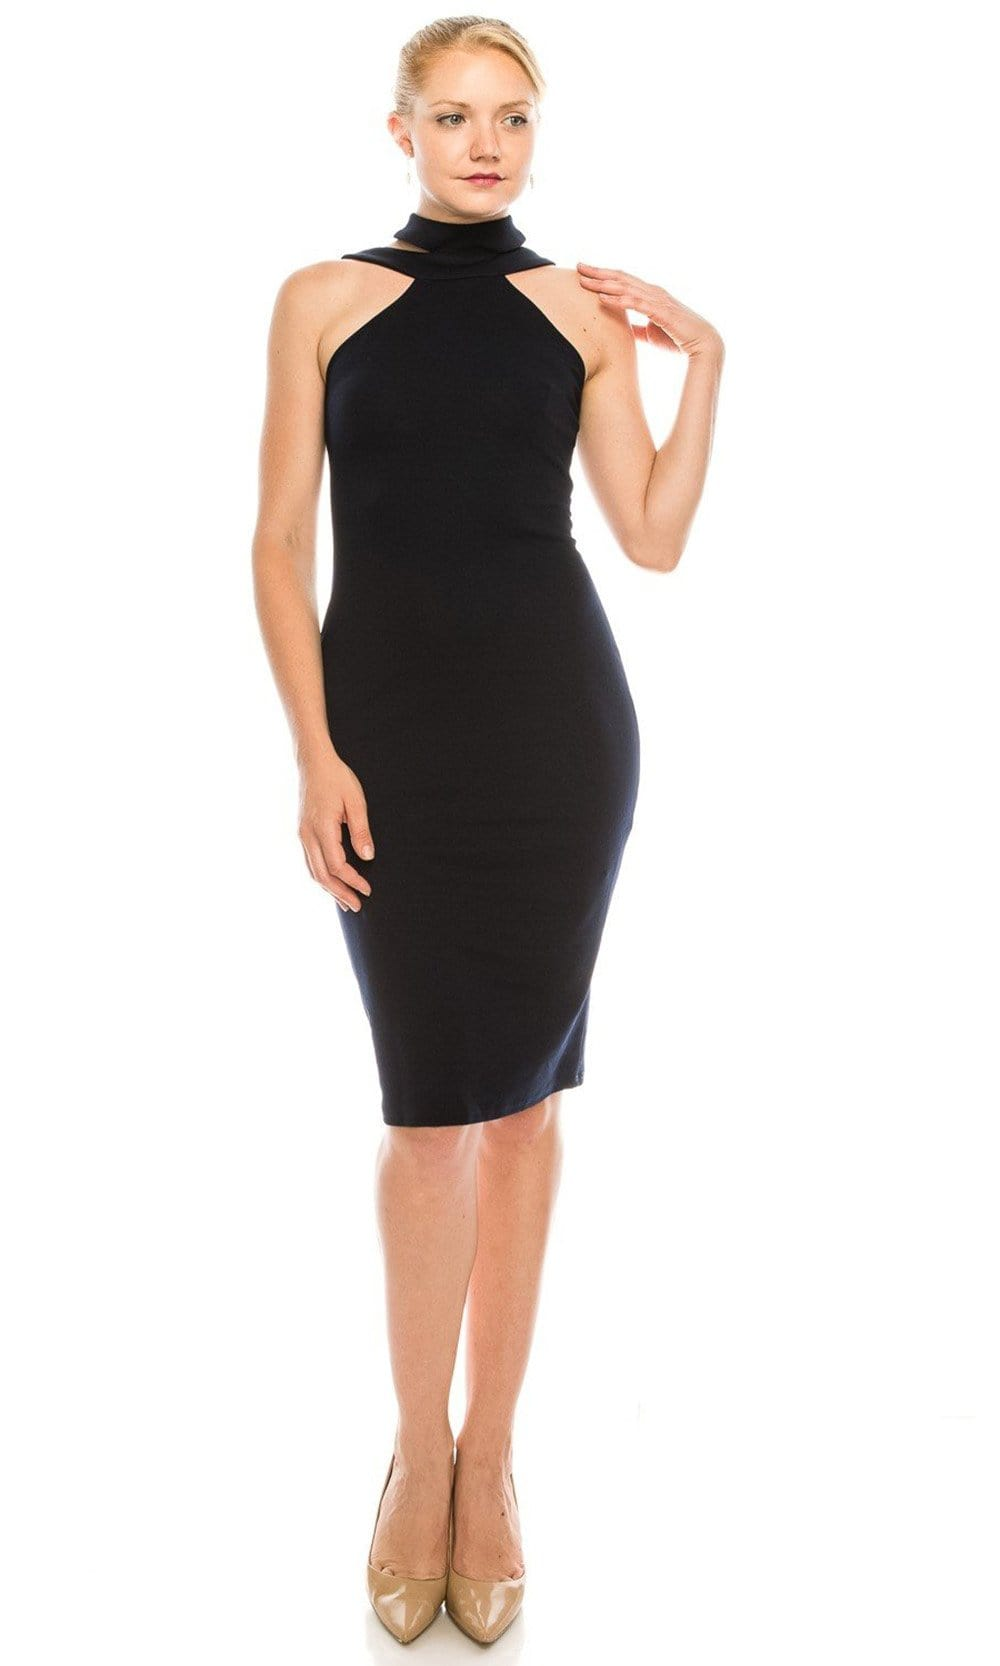 Bebe - 701675 Cutout Mock Neck Sheath Stretch Crepe Dress from Bebe